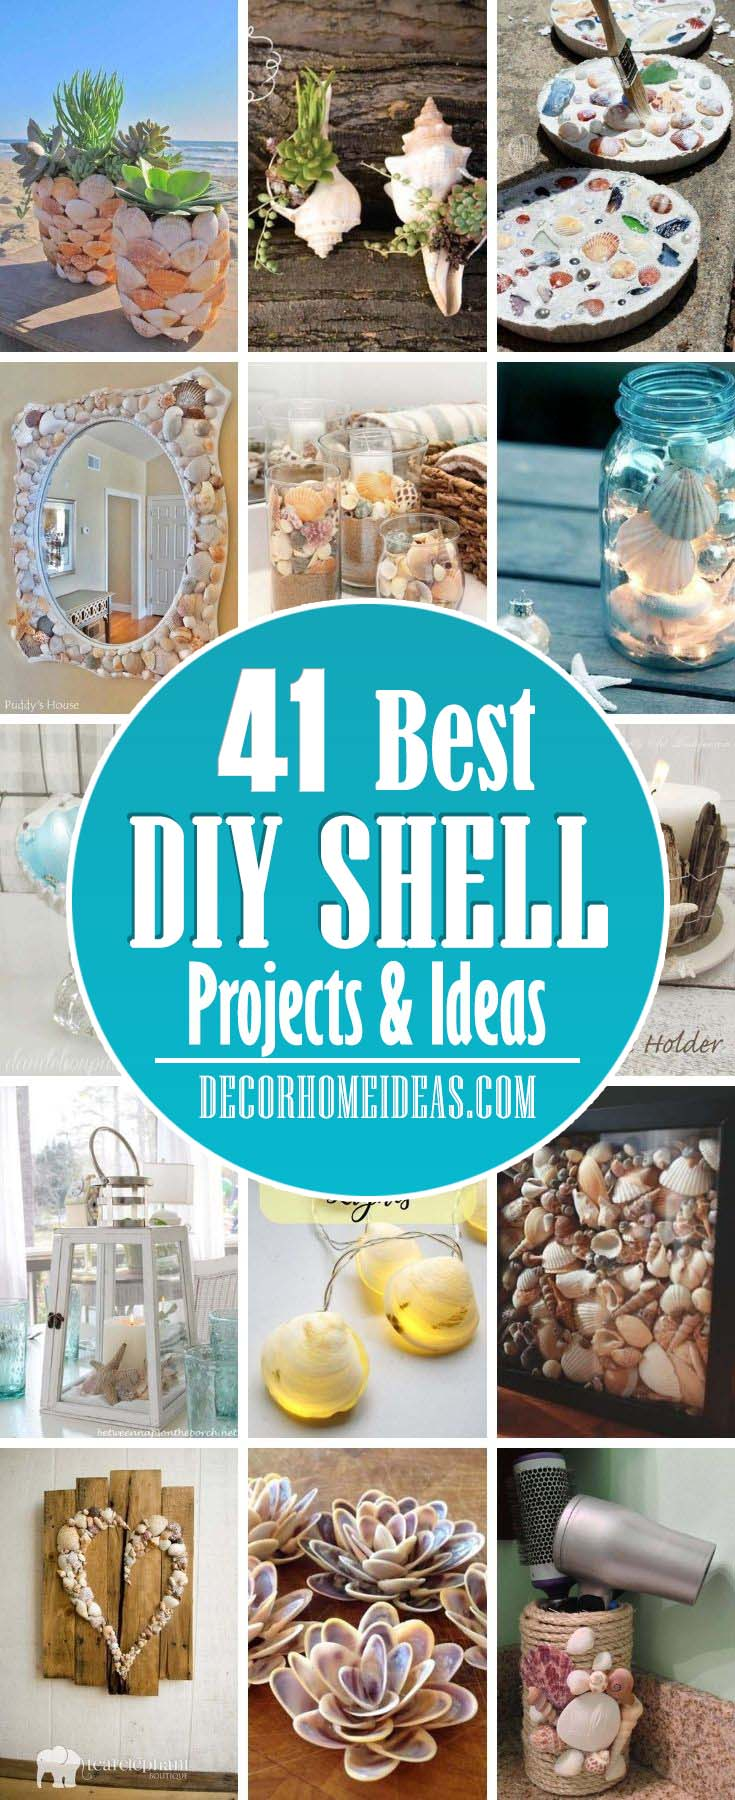 Best Shell Project Ideas. If you are in love with the beach and the ocean you will love these DIY shell projects and ideas that you can do in no time. They are fun and easy to do. #decorhomeideas